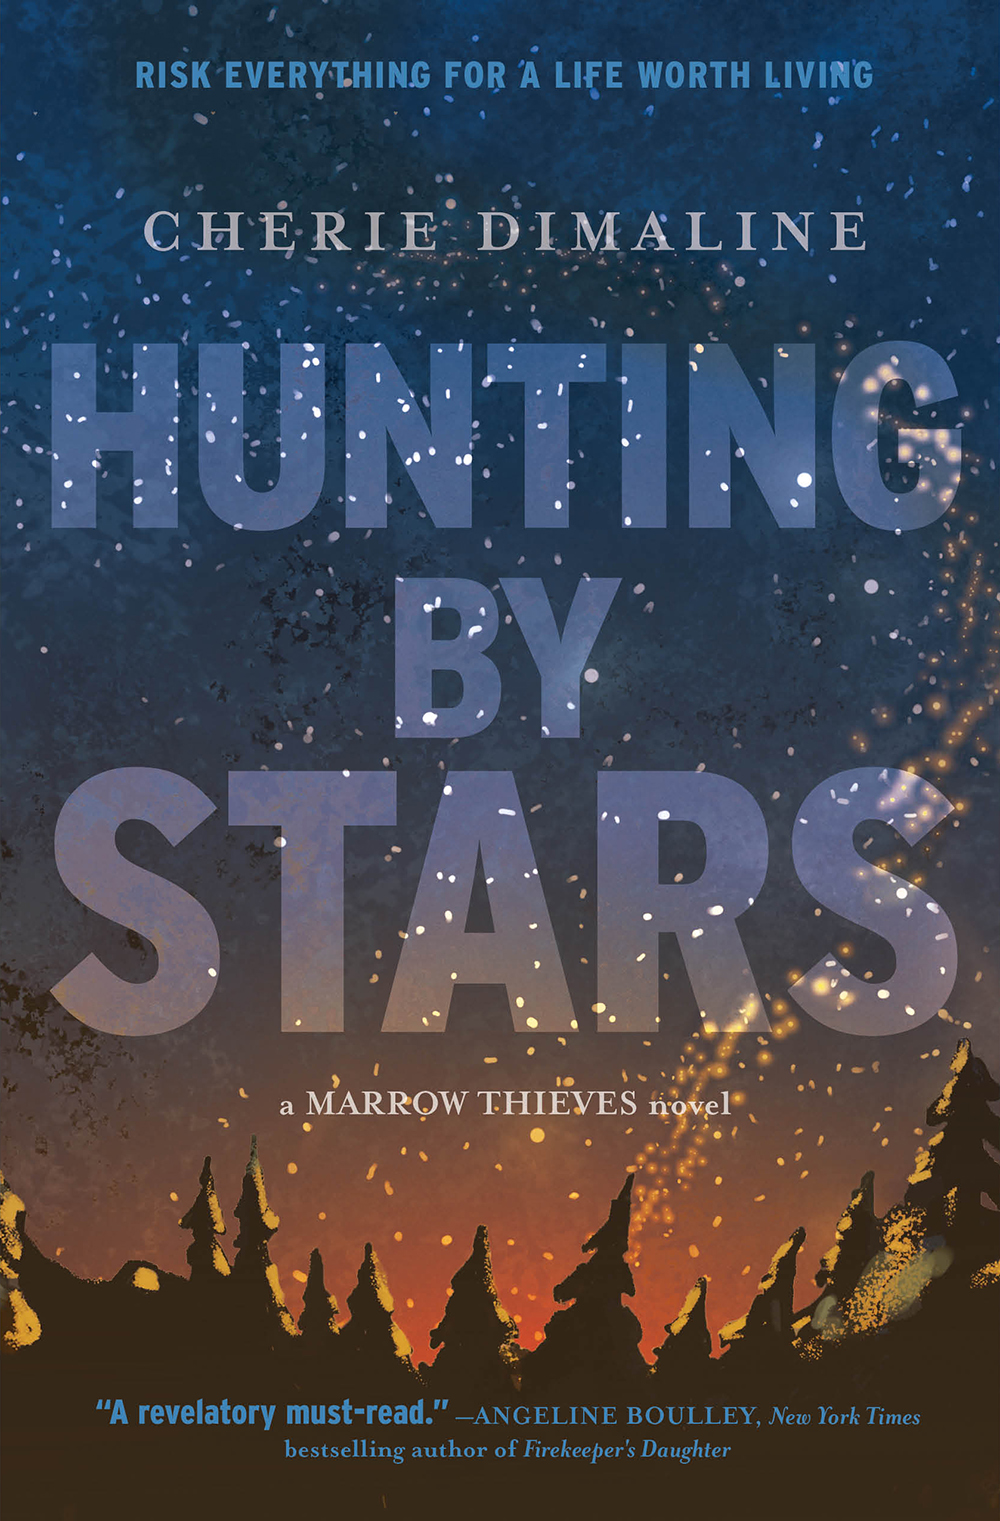 the book cover has a night sky filled with stars and the tips of tall evergreen trees. It seems there are also sparks from a fire rising from the ground near the trees.